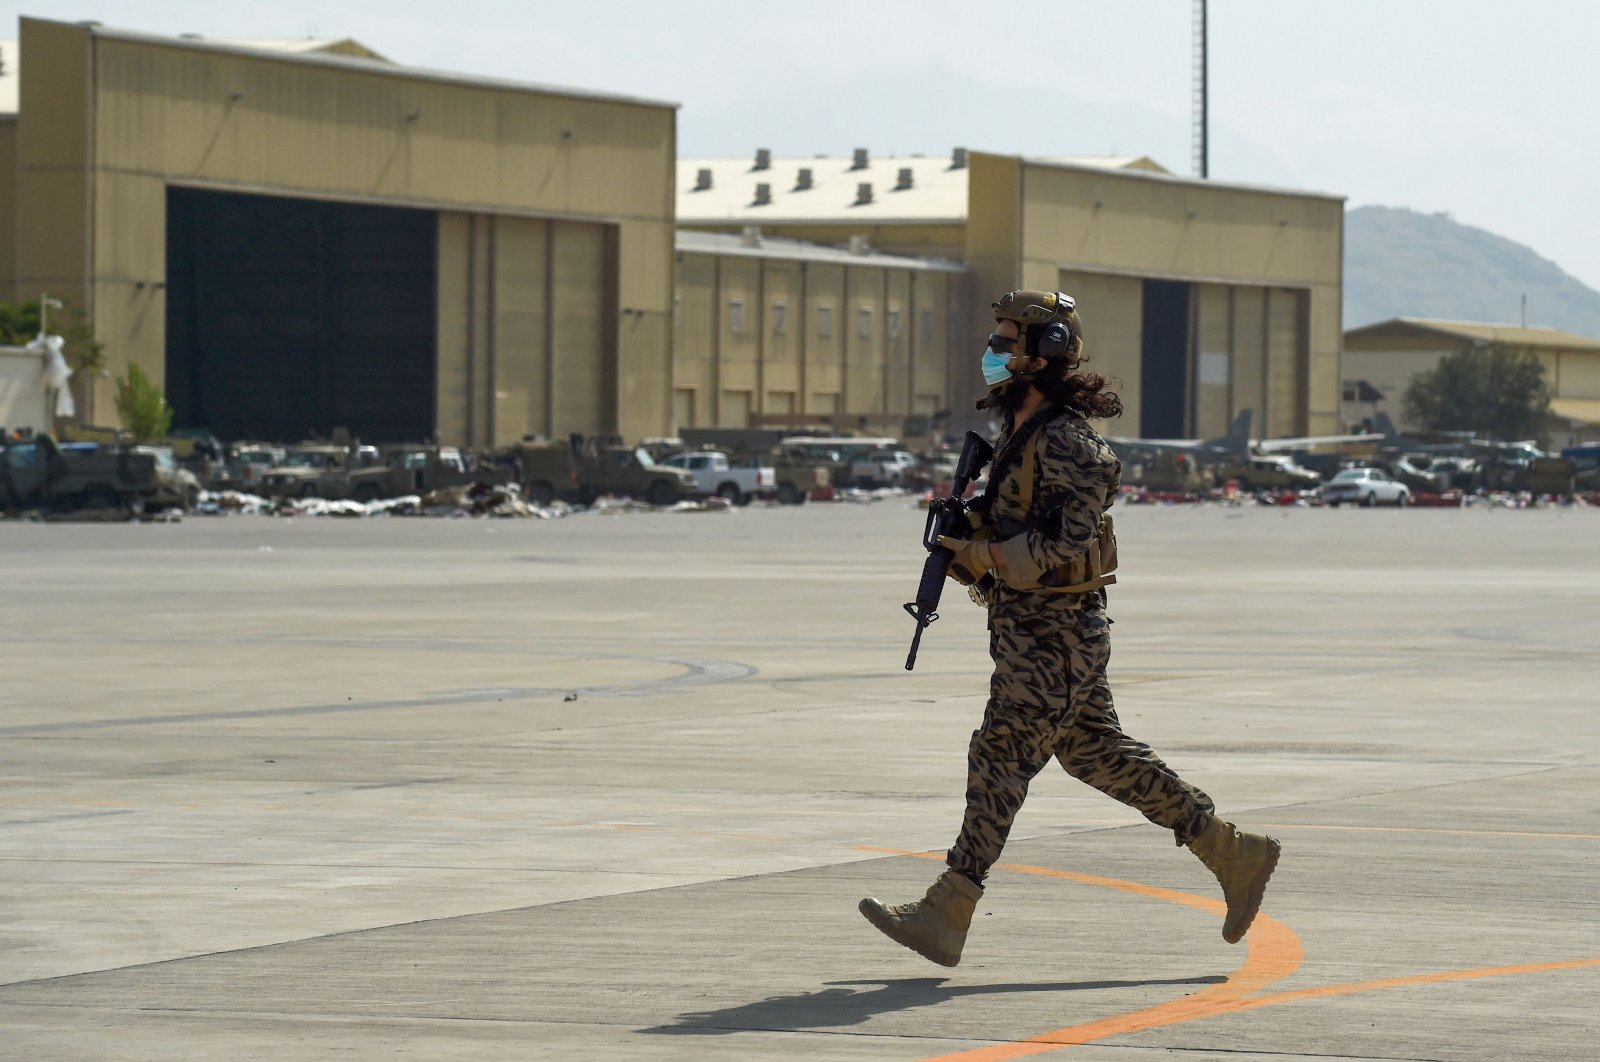 A member of the Taliban Badri 313 military unit runs to take up his position at Kabul airport after the U.S. pulled all its troops out of the country to end a 20-year war, Kabul, Afghanistan, Aug. 31, 2021. (AFP Photo)